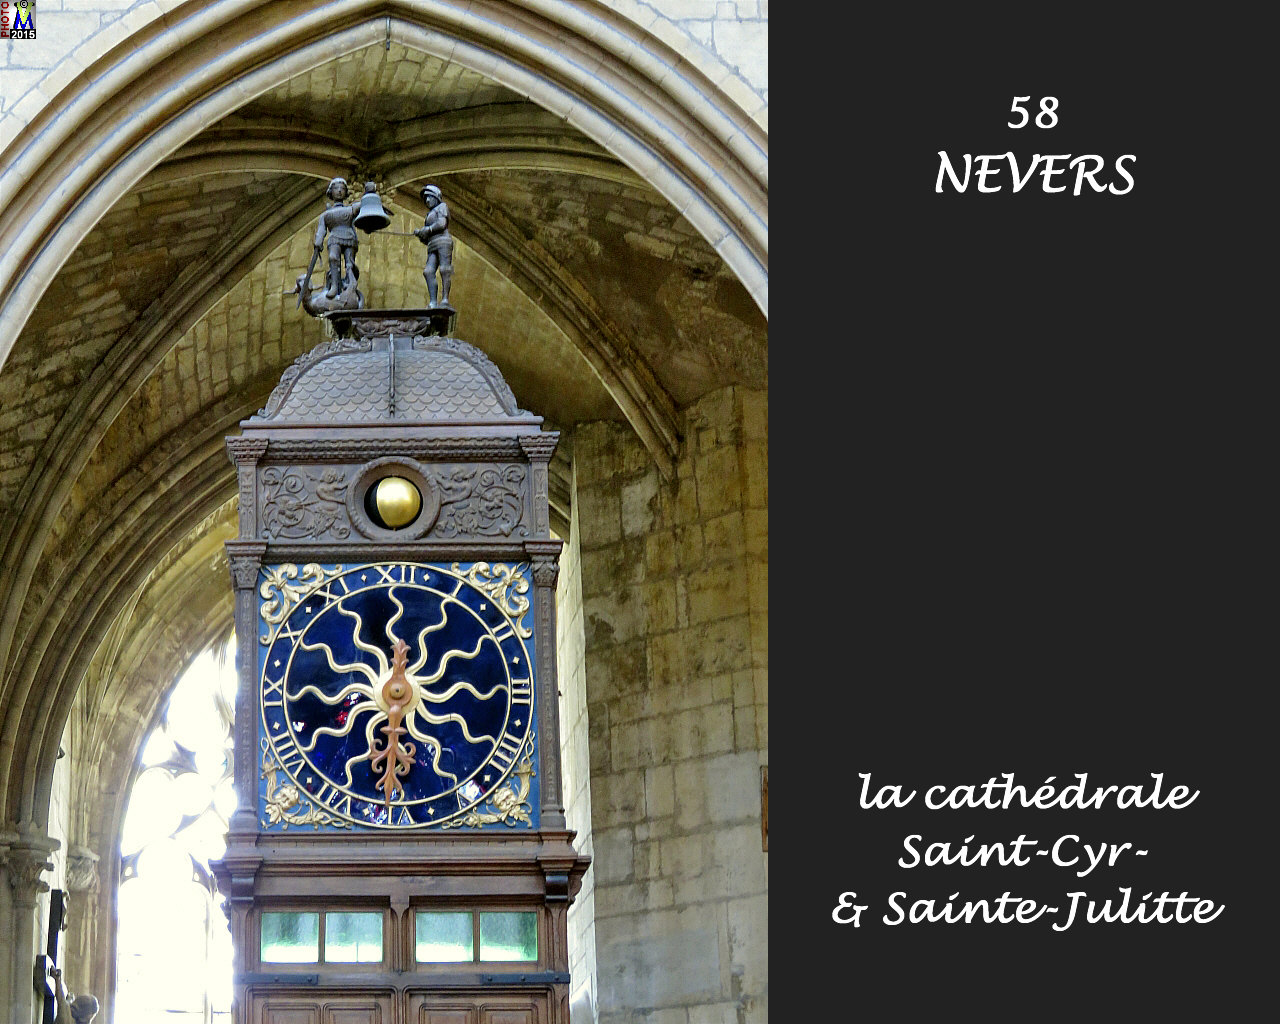 58NEVERS-cathedrale_268.jpg